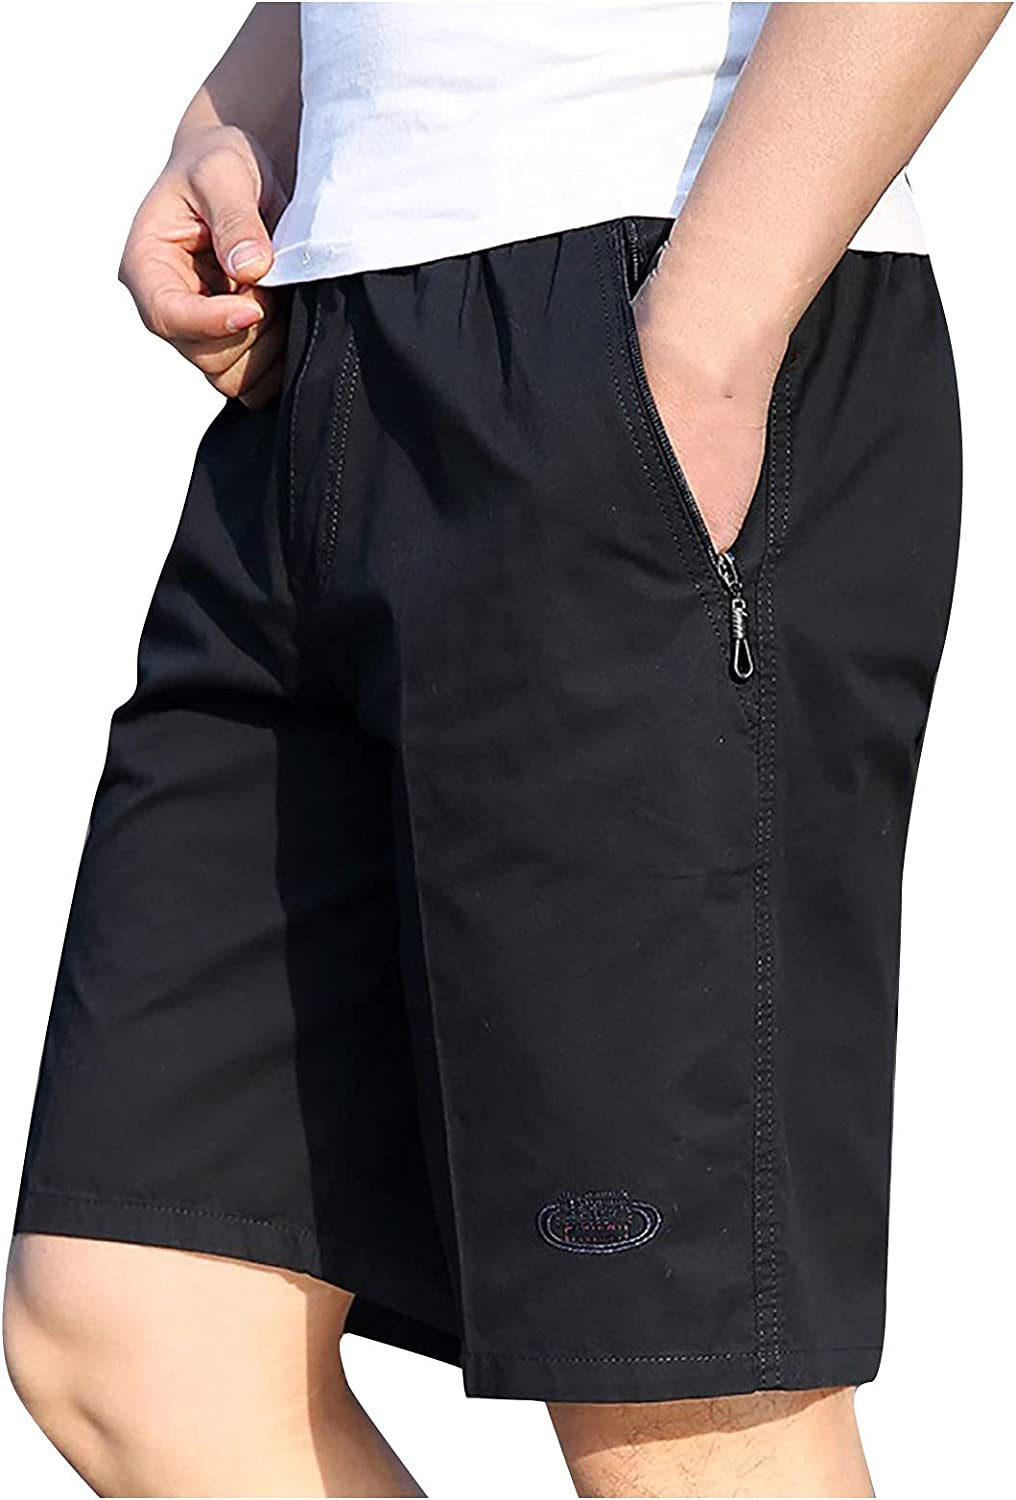 Men's Cargo Shorts Summer Solid Leisure Multi-Pocket Overalls Shorts Outdoor Workout Shorts FLA Front Shorts 7